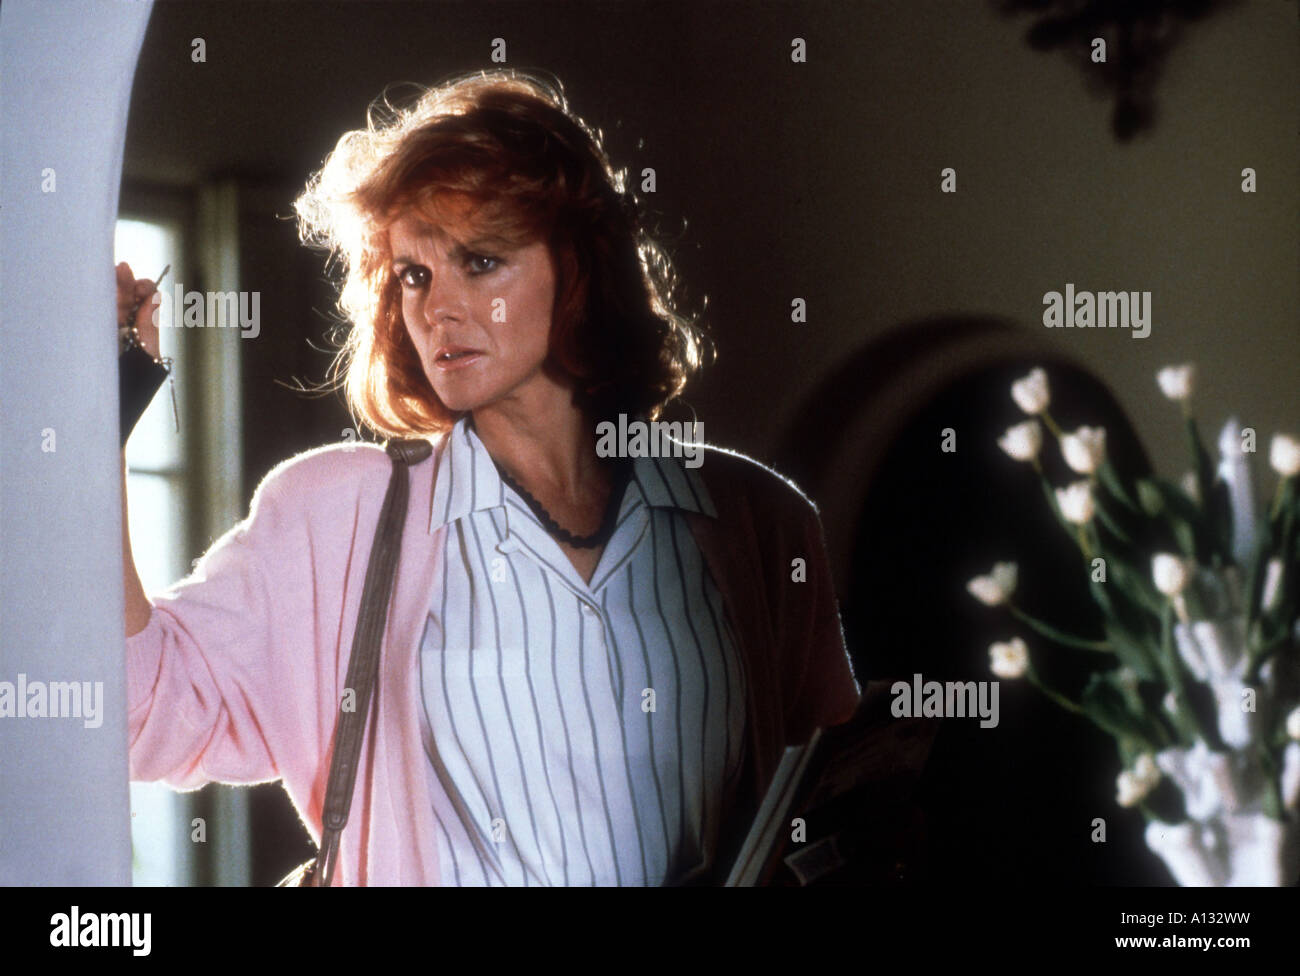 52 Pick Up 1986 John Frankenheimer Ann Margret Stock Photo